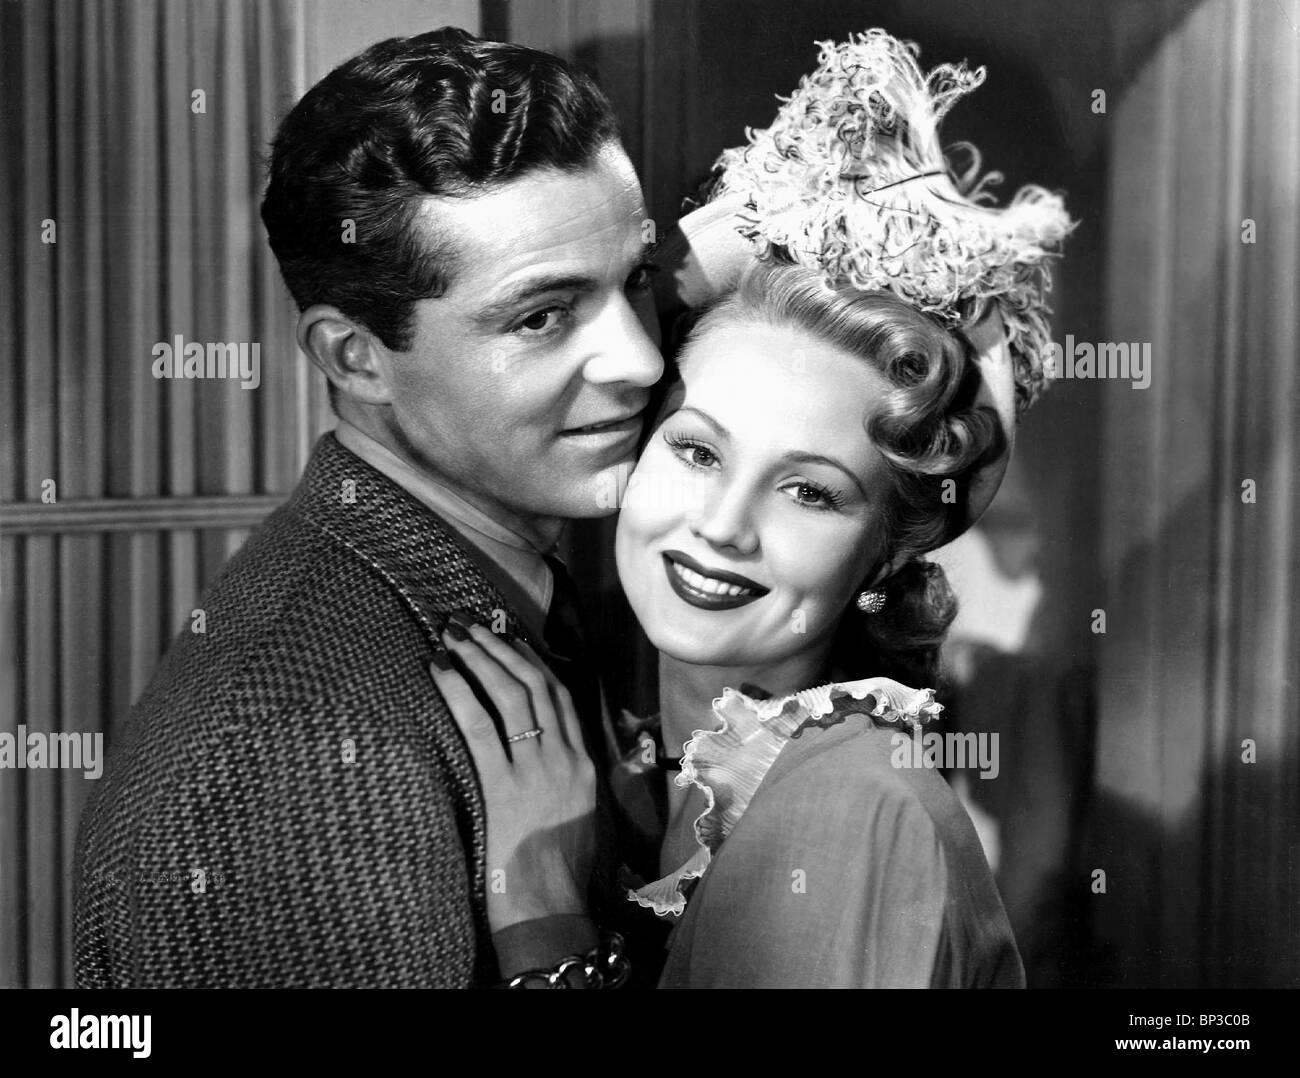 DANA ANDREWS, VIRGINIA MAYO, THE BEST YEARS OF OUR LIVES